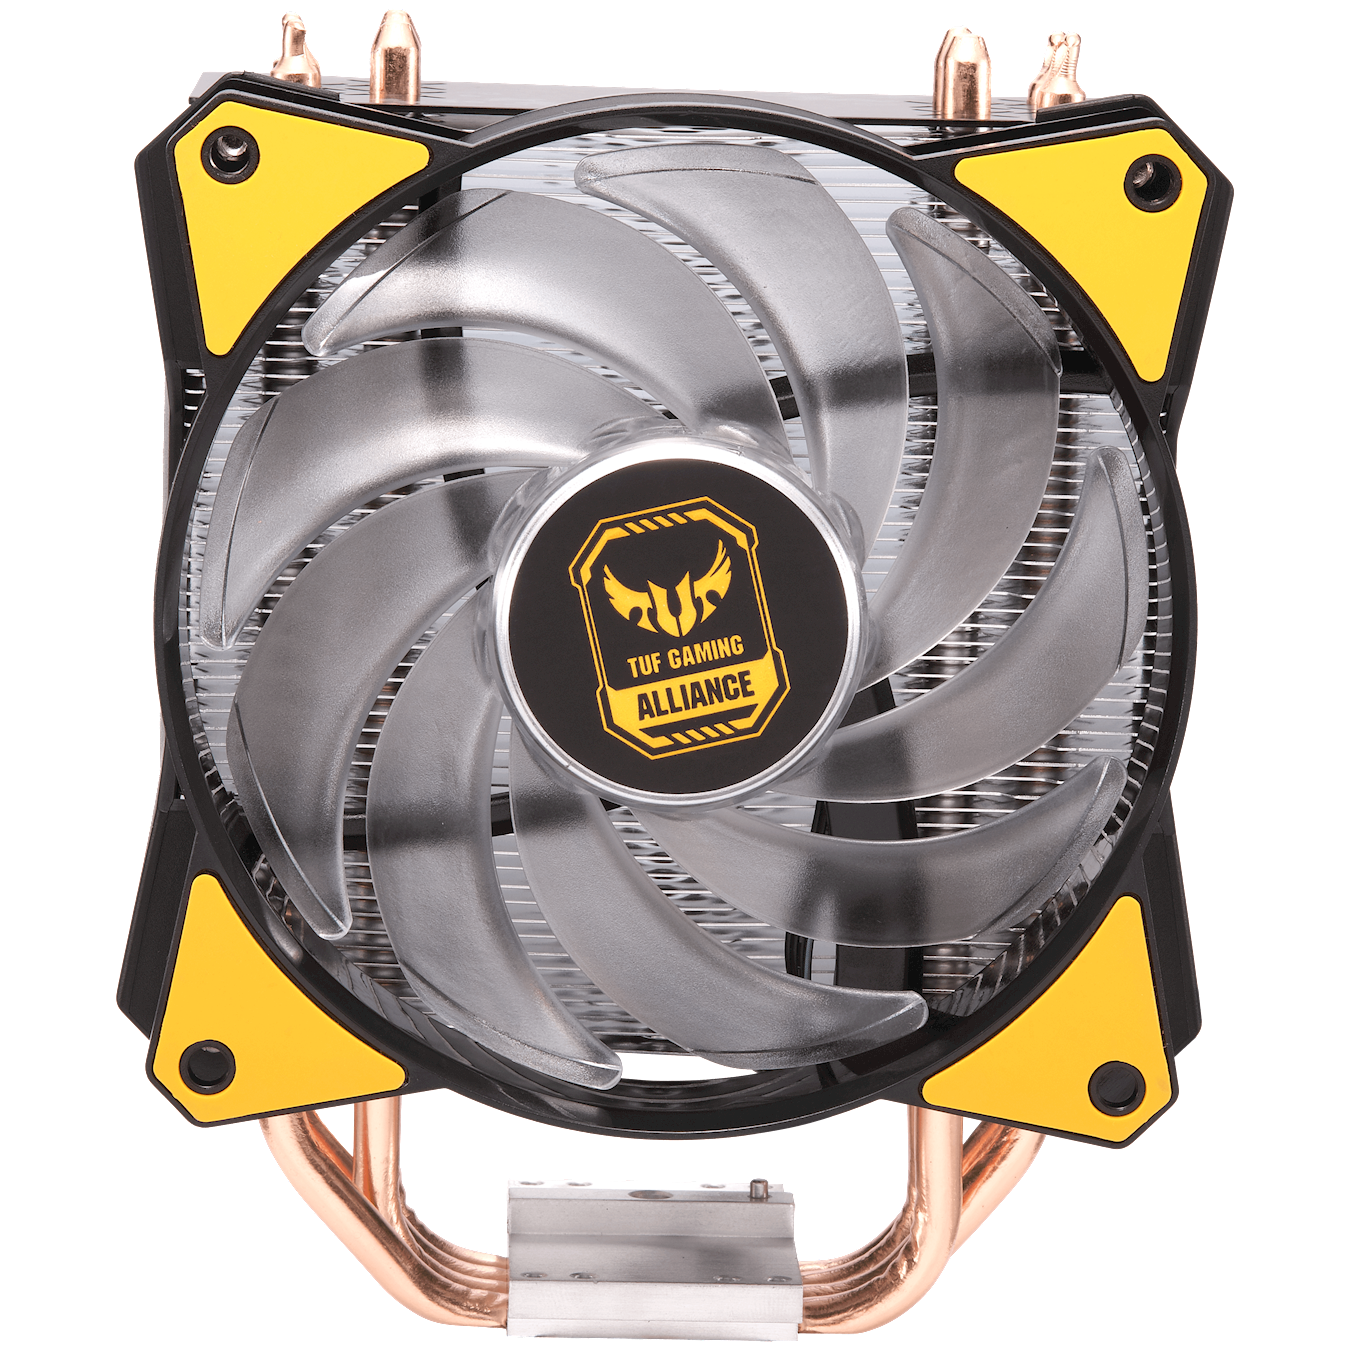 MasterAir MA410P TUF Gaming Edition is the upgraded version of the MasterAir Pro 4